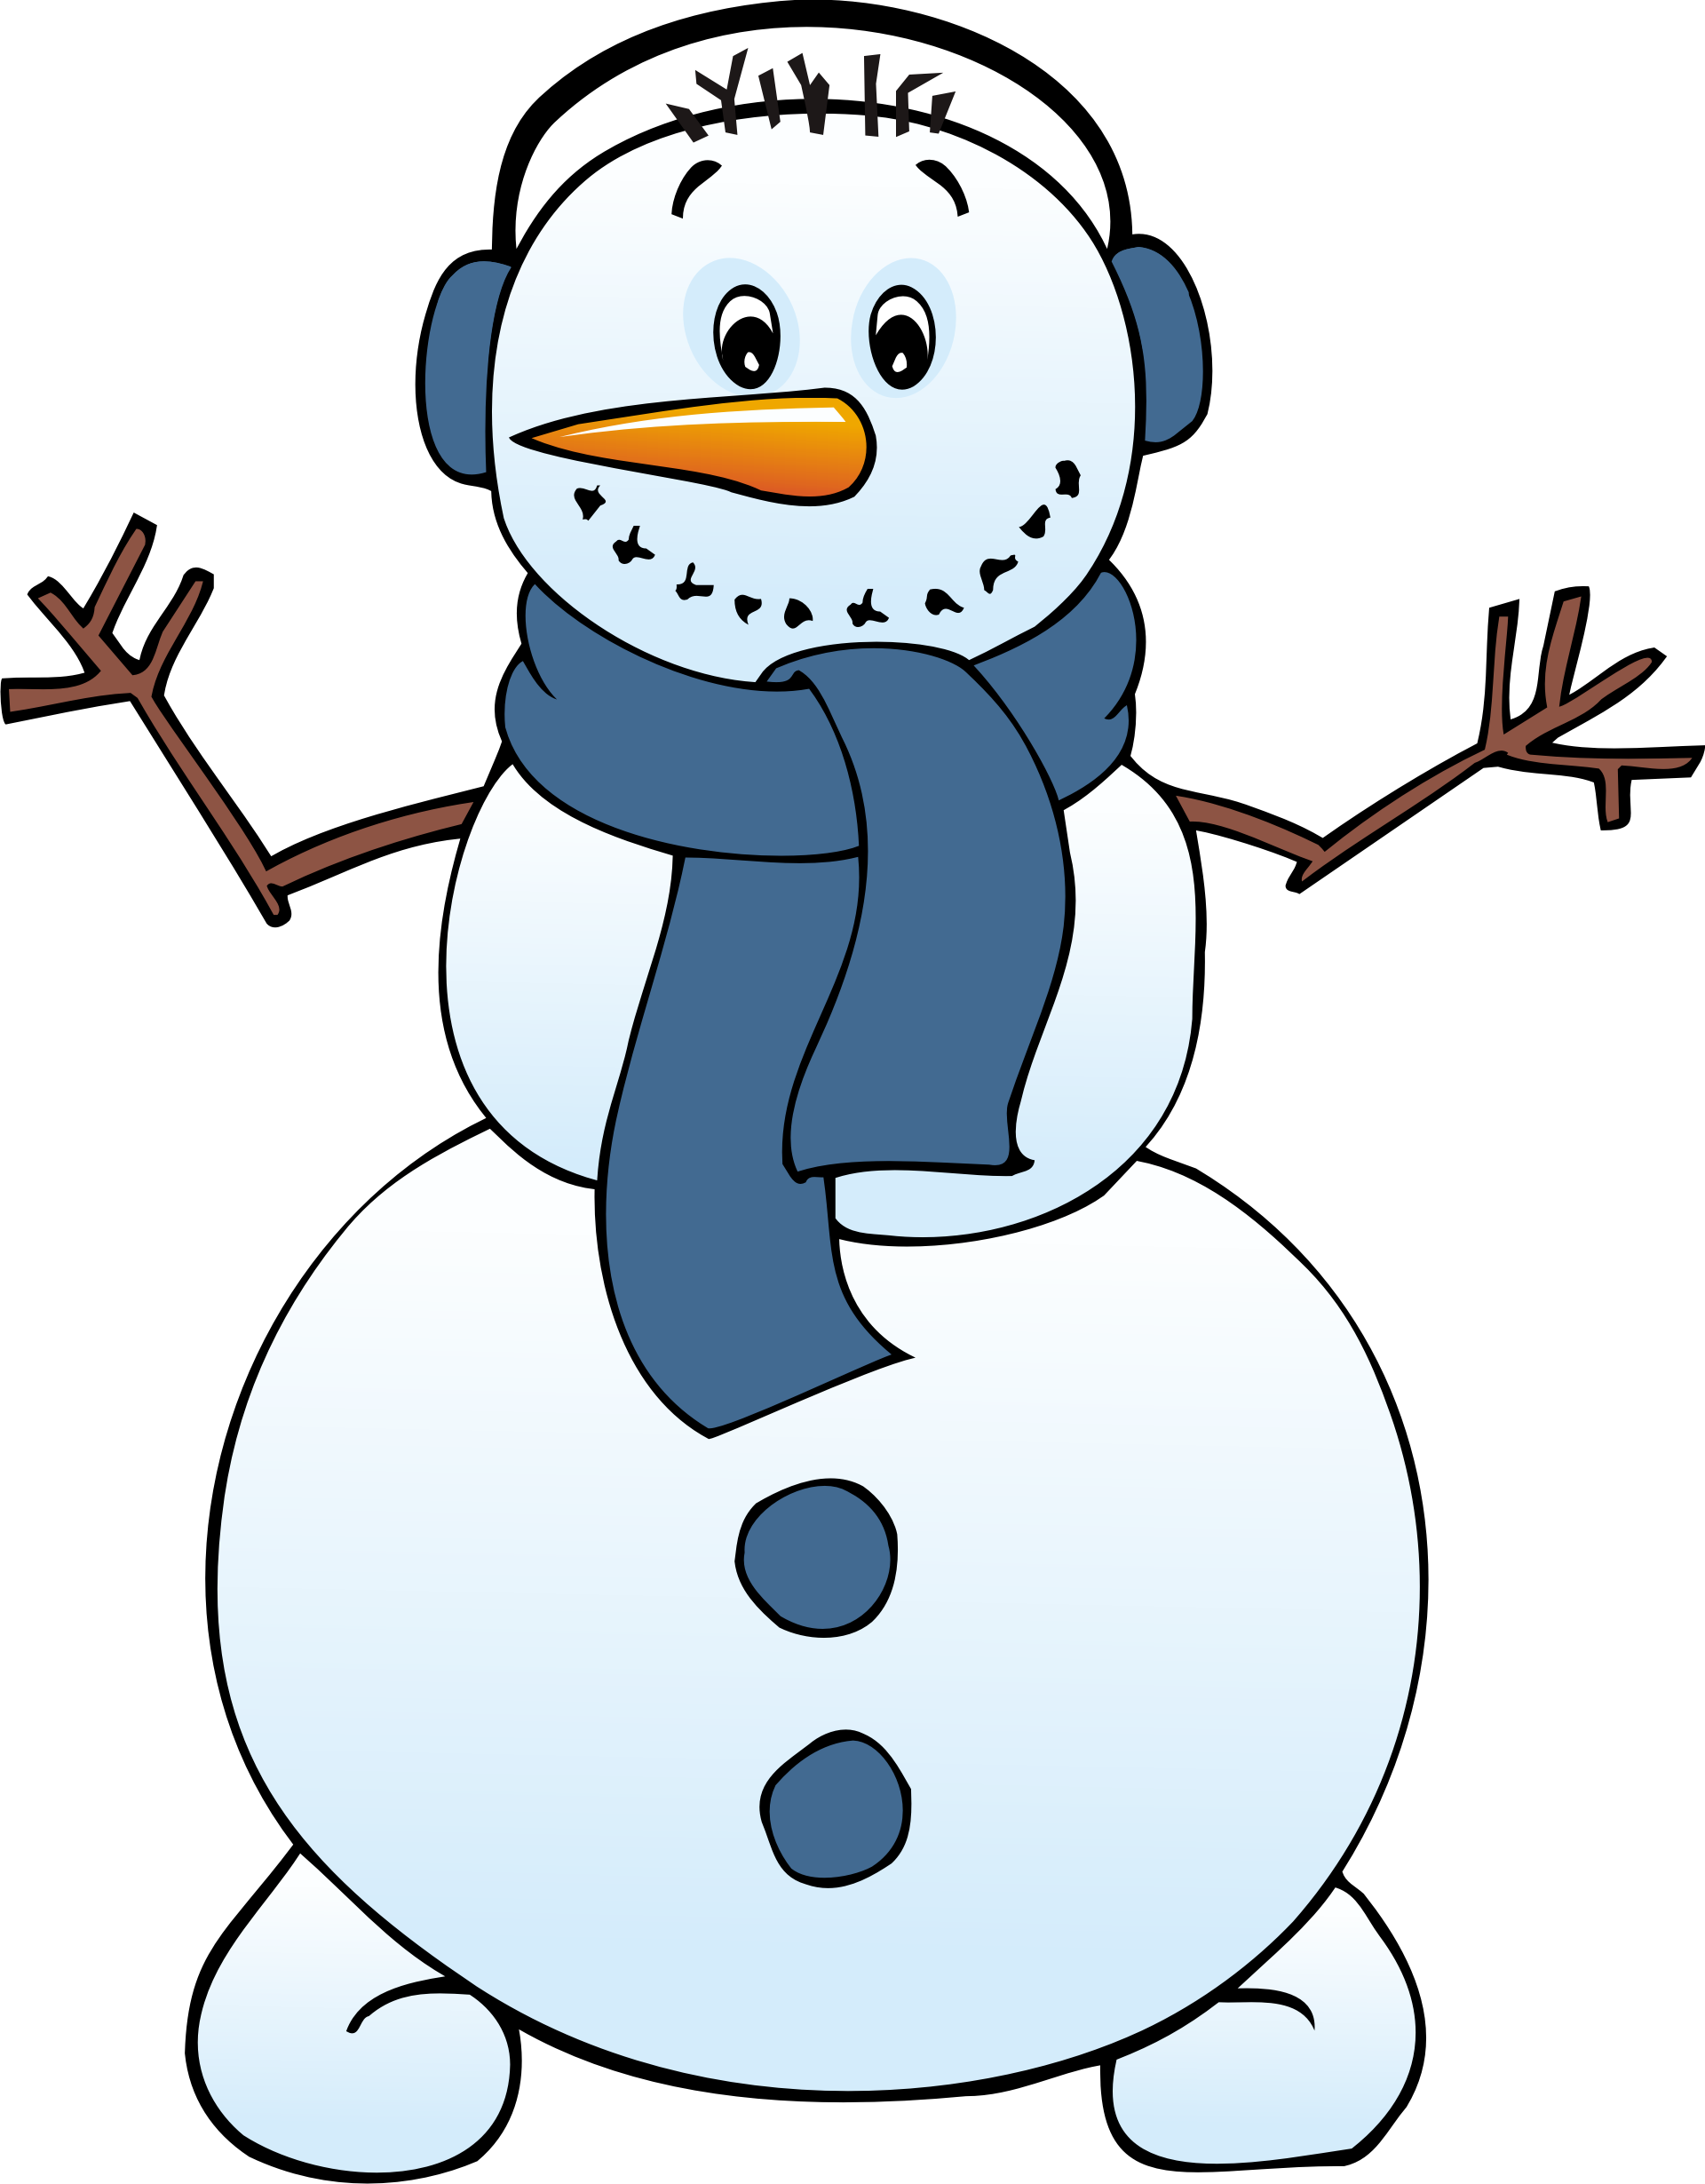 Download cliparts graphic royalty free library Cute Snowman Clip Art | free snowman clipart . Free cliparts that ... graphic royalty free library